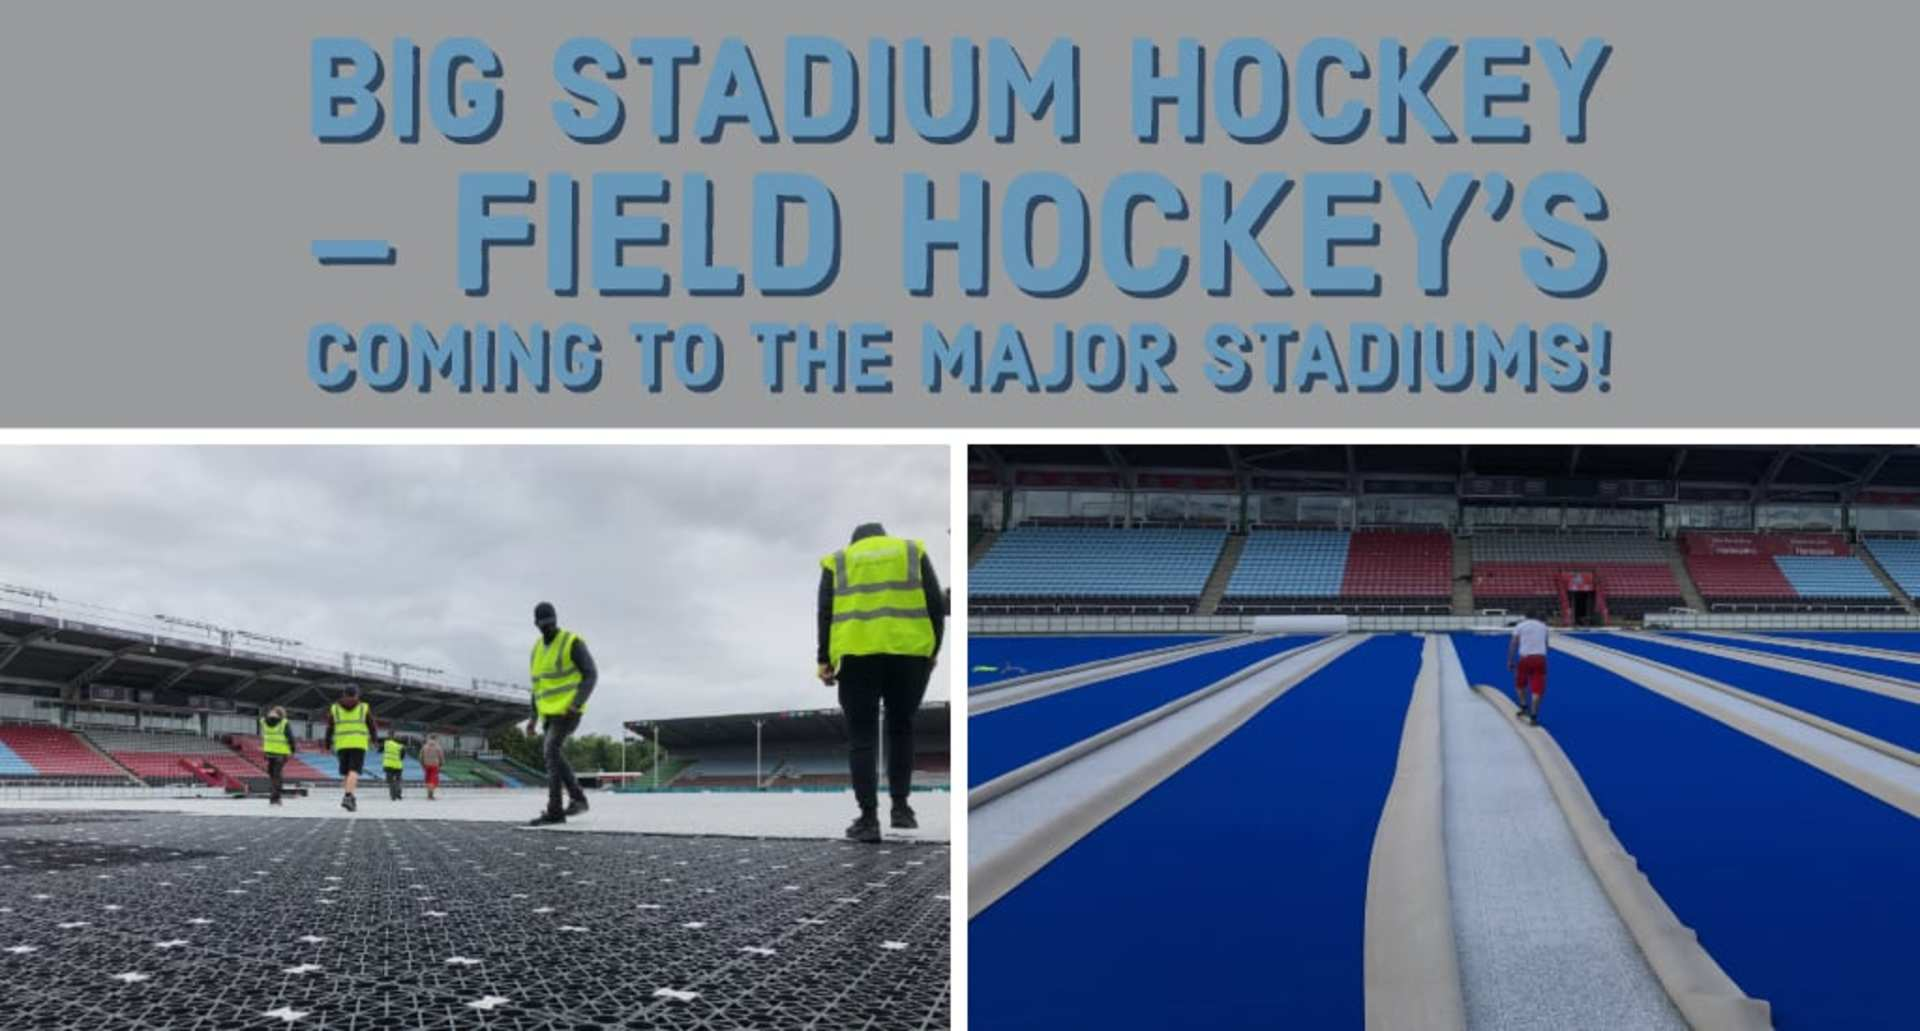 Big Stadium Hockey – field hockey's coming to the major stadiums!